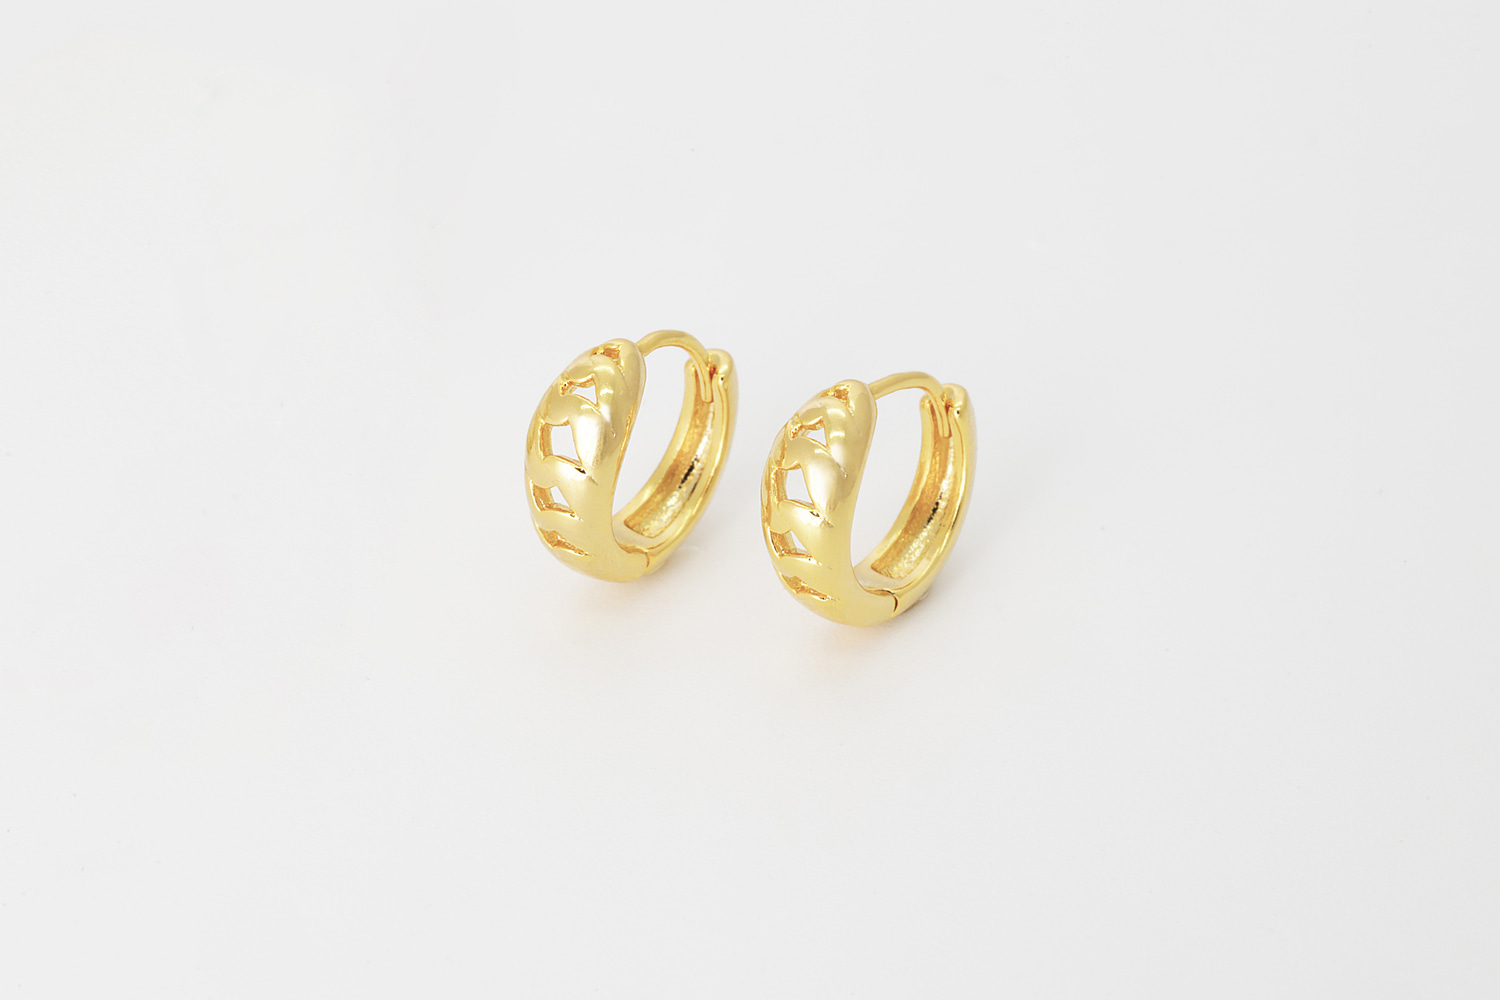 [T68-P7] Unique cutout one touch earring, Brass, Nickel free, Hoop earrings, Handmade jewelry, Fashion jewelry